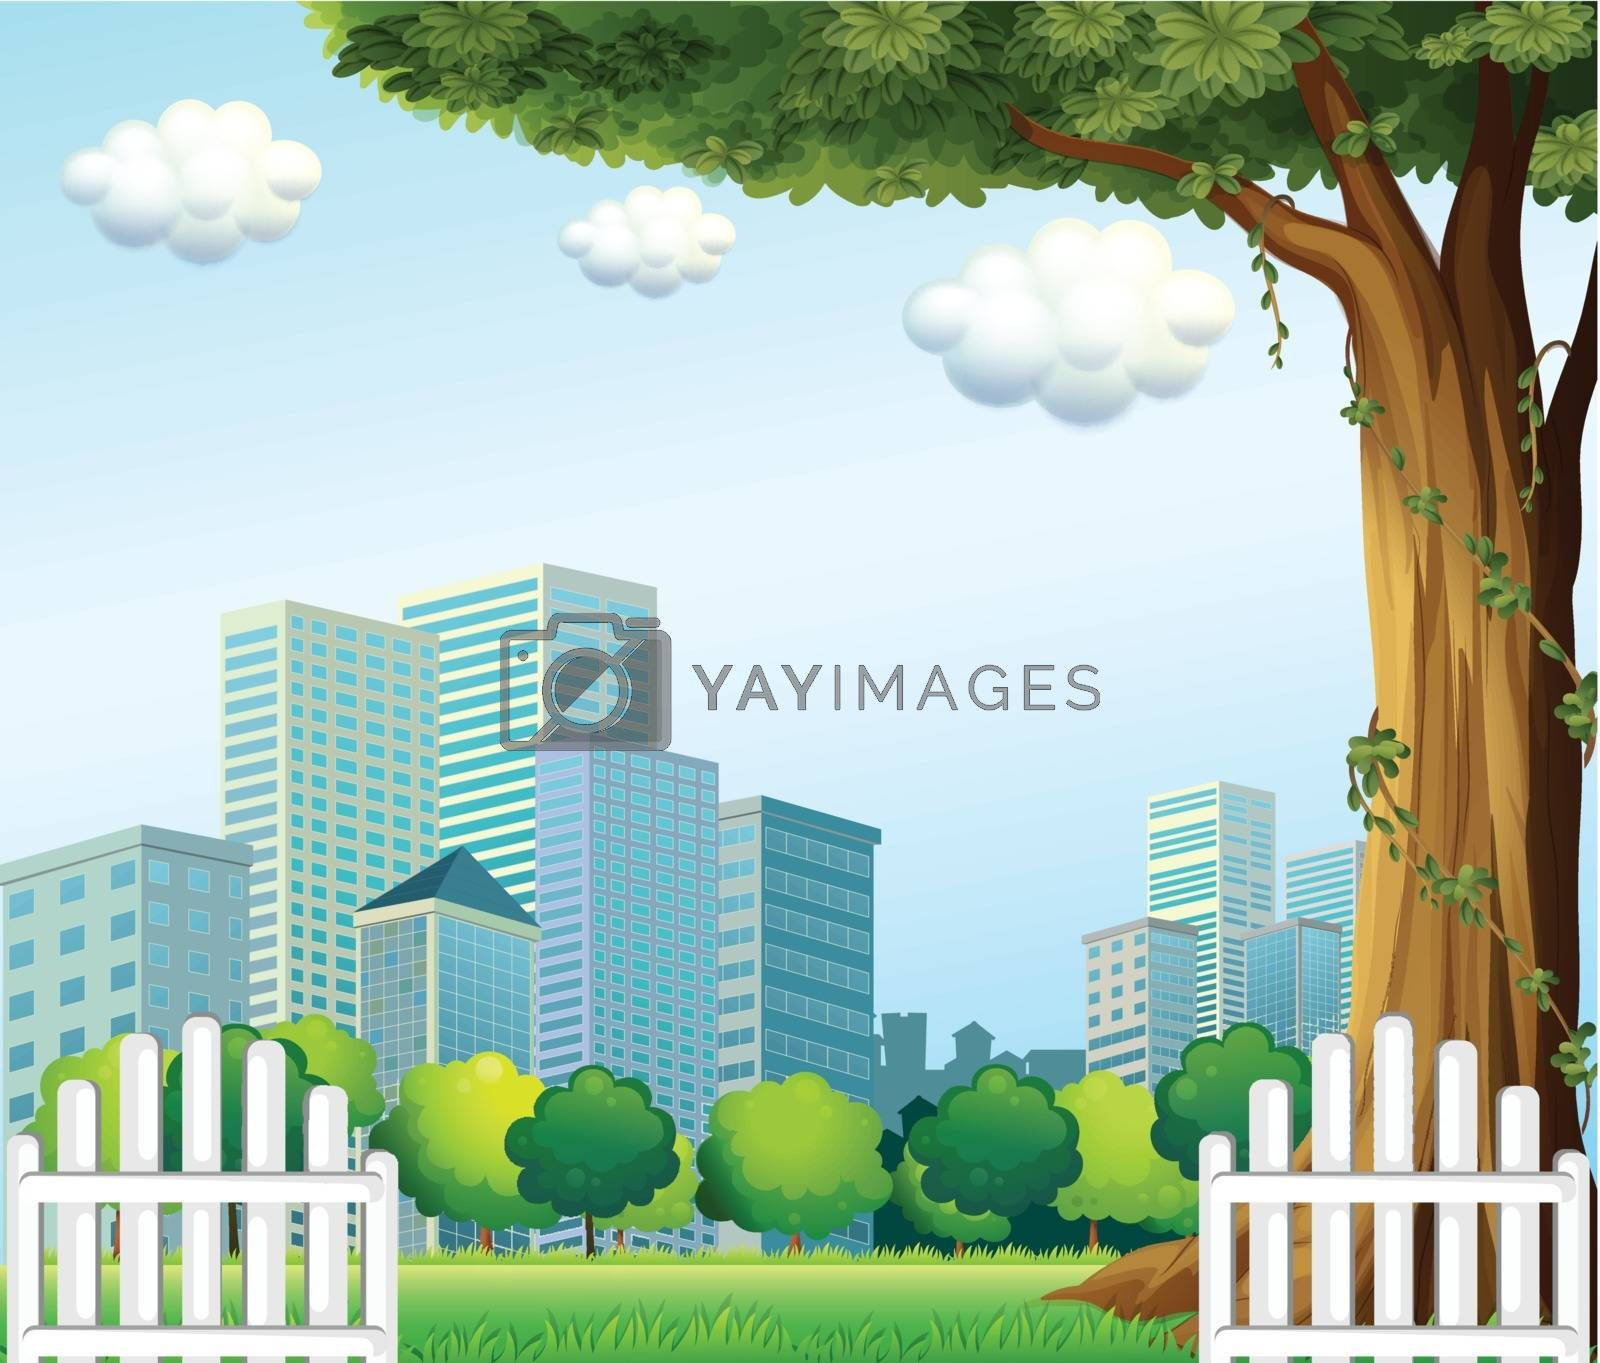 Royalty free image of A giant tree near the wooden fence across the tall buildings by iimages